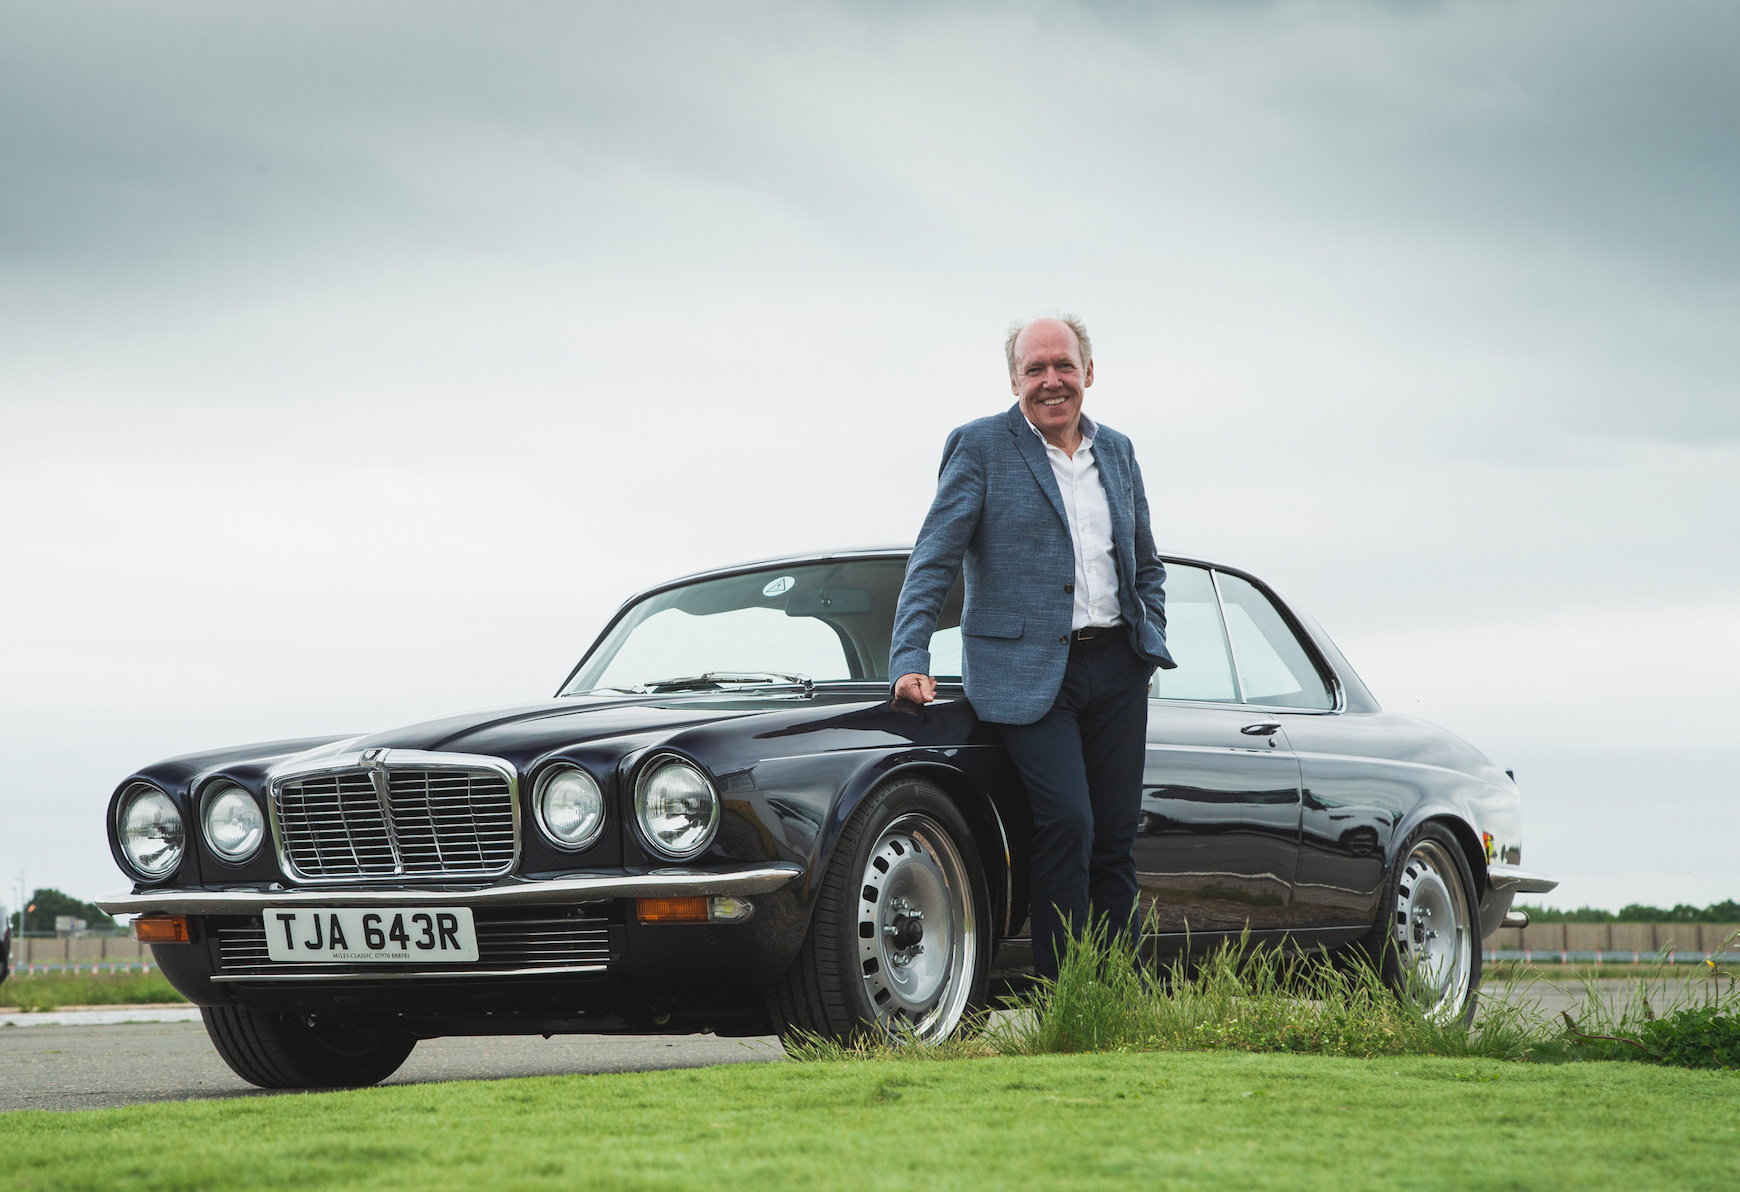 London Concours Celebrates Ian Callum in 'The Collector' Feature